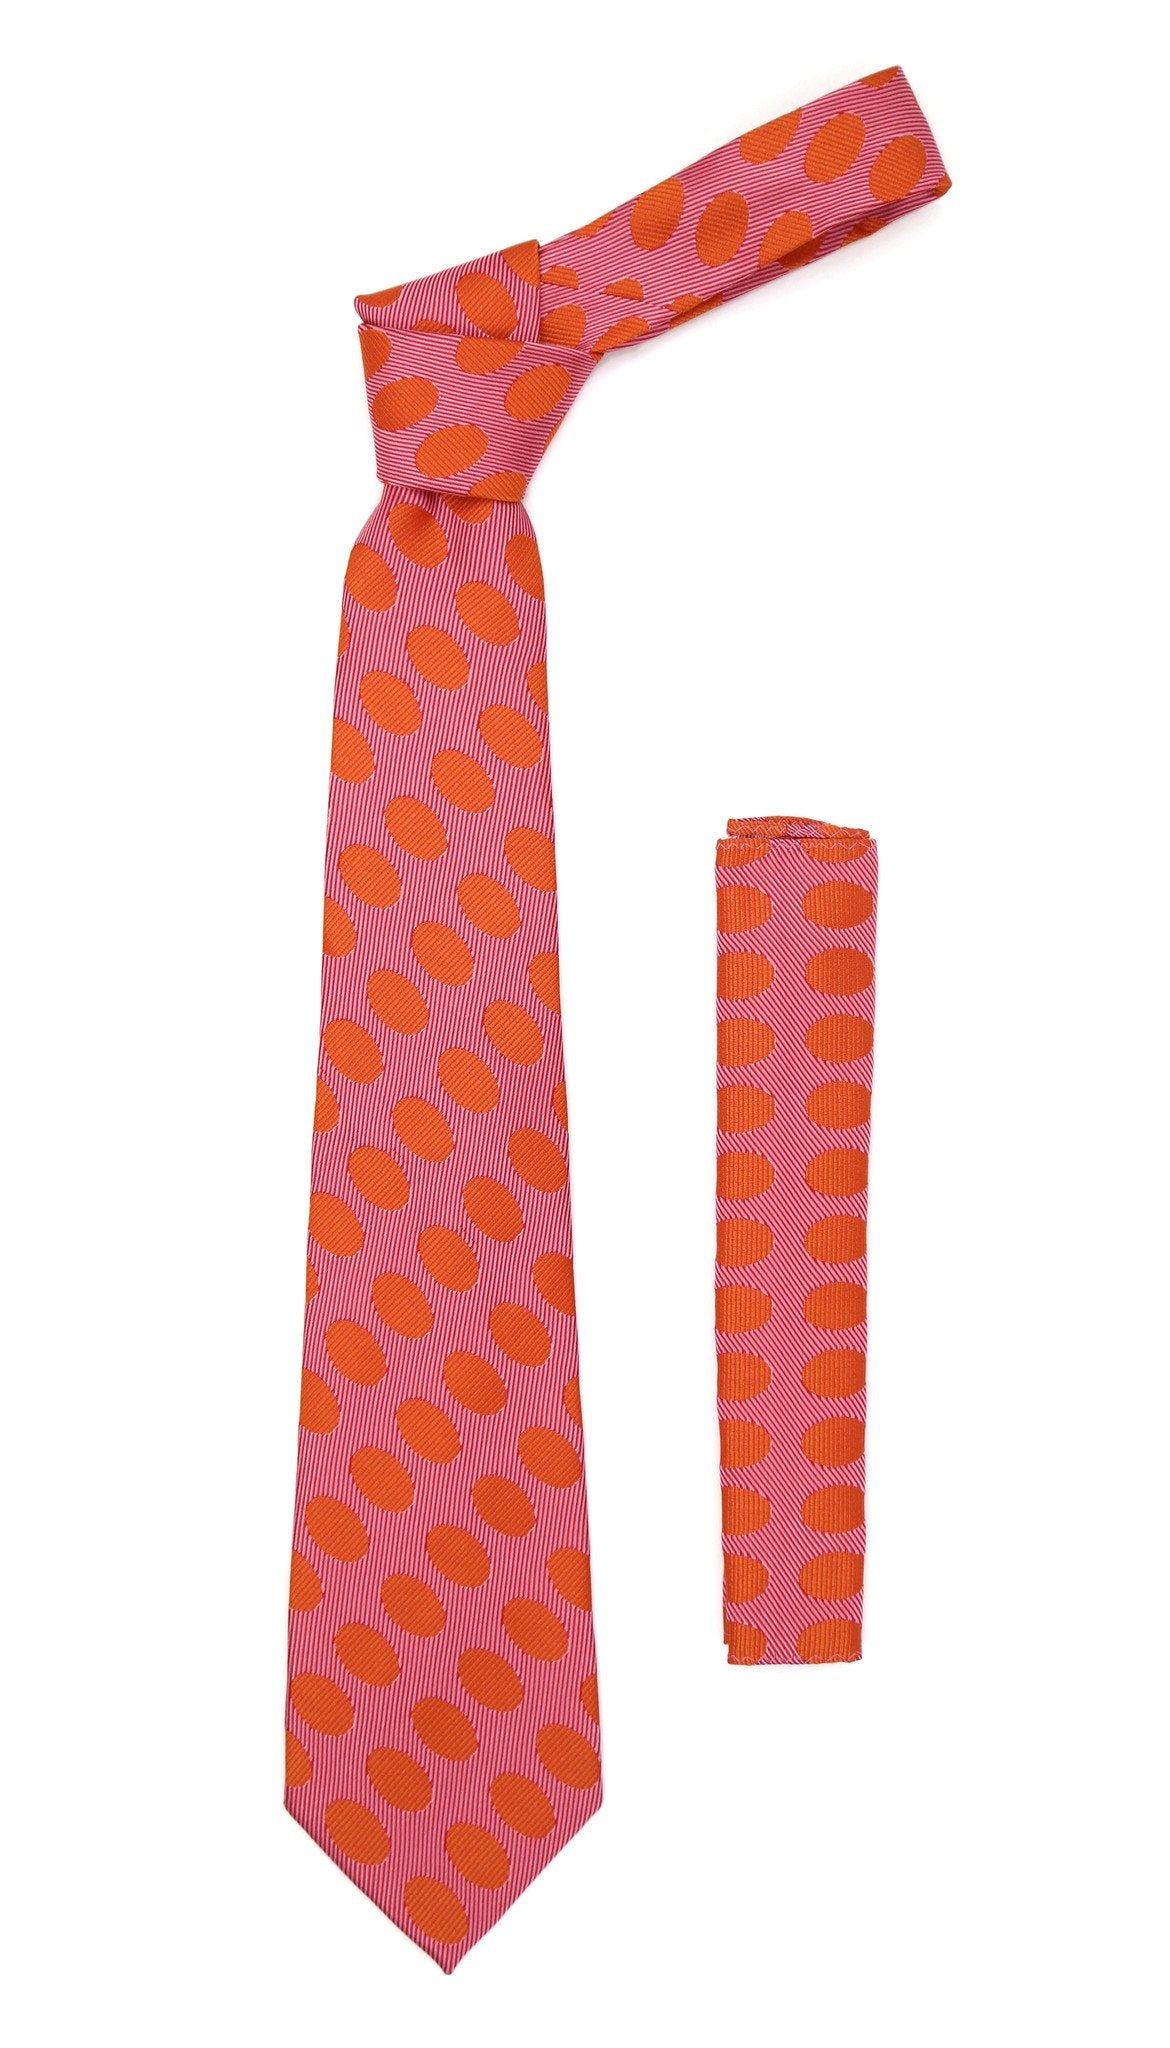 Red Orange Polkadot Stripe Necktie with Handkerchief Set - Giorgio's Menswear